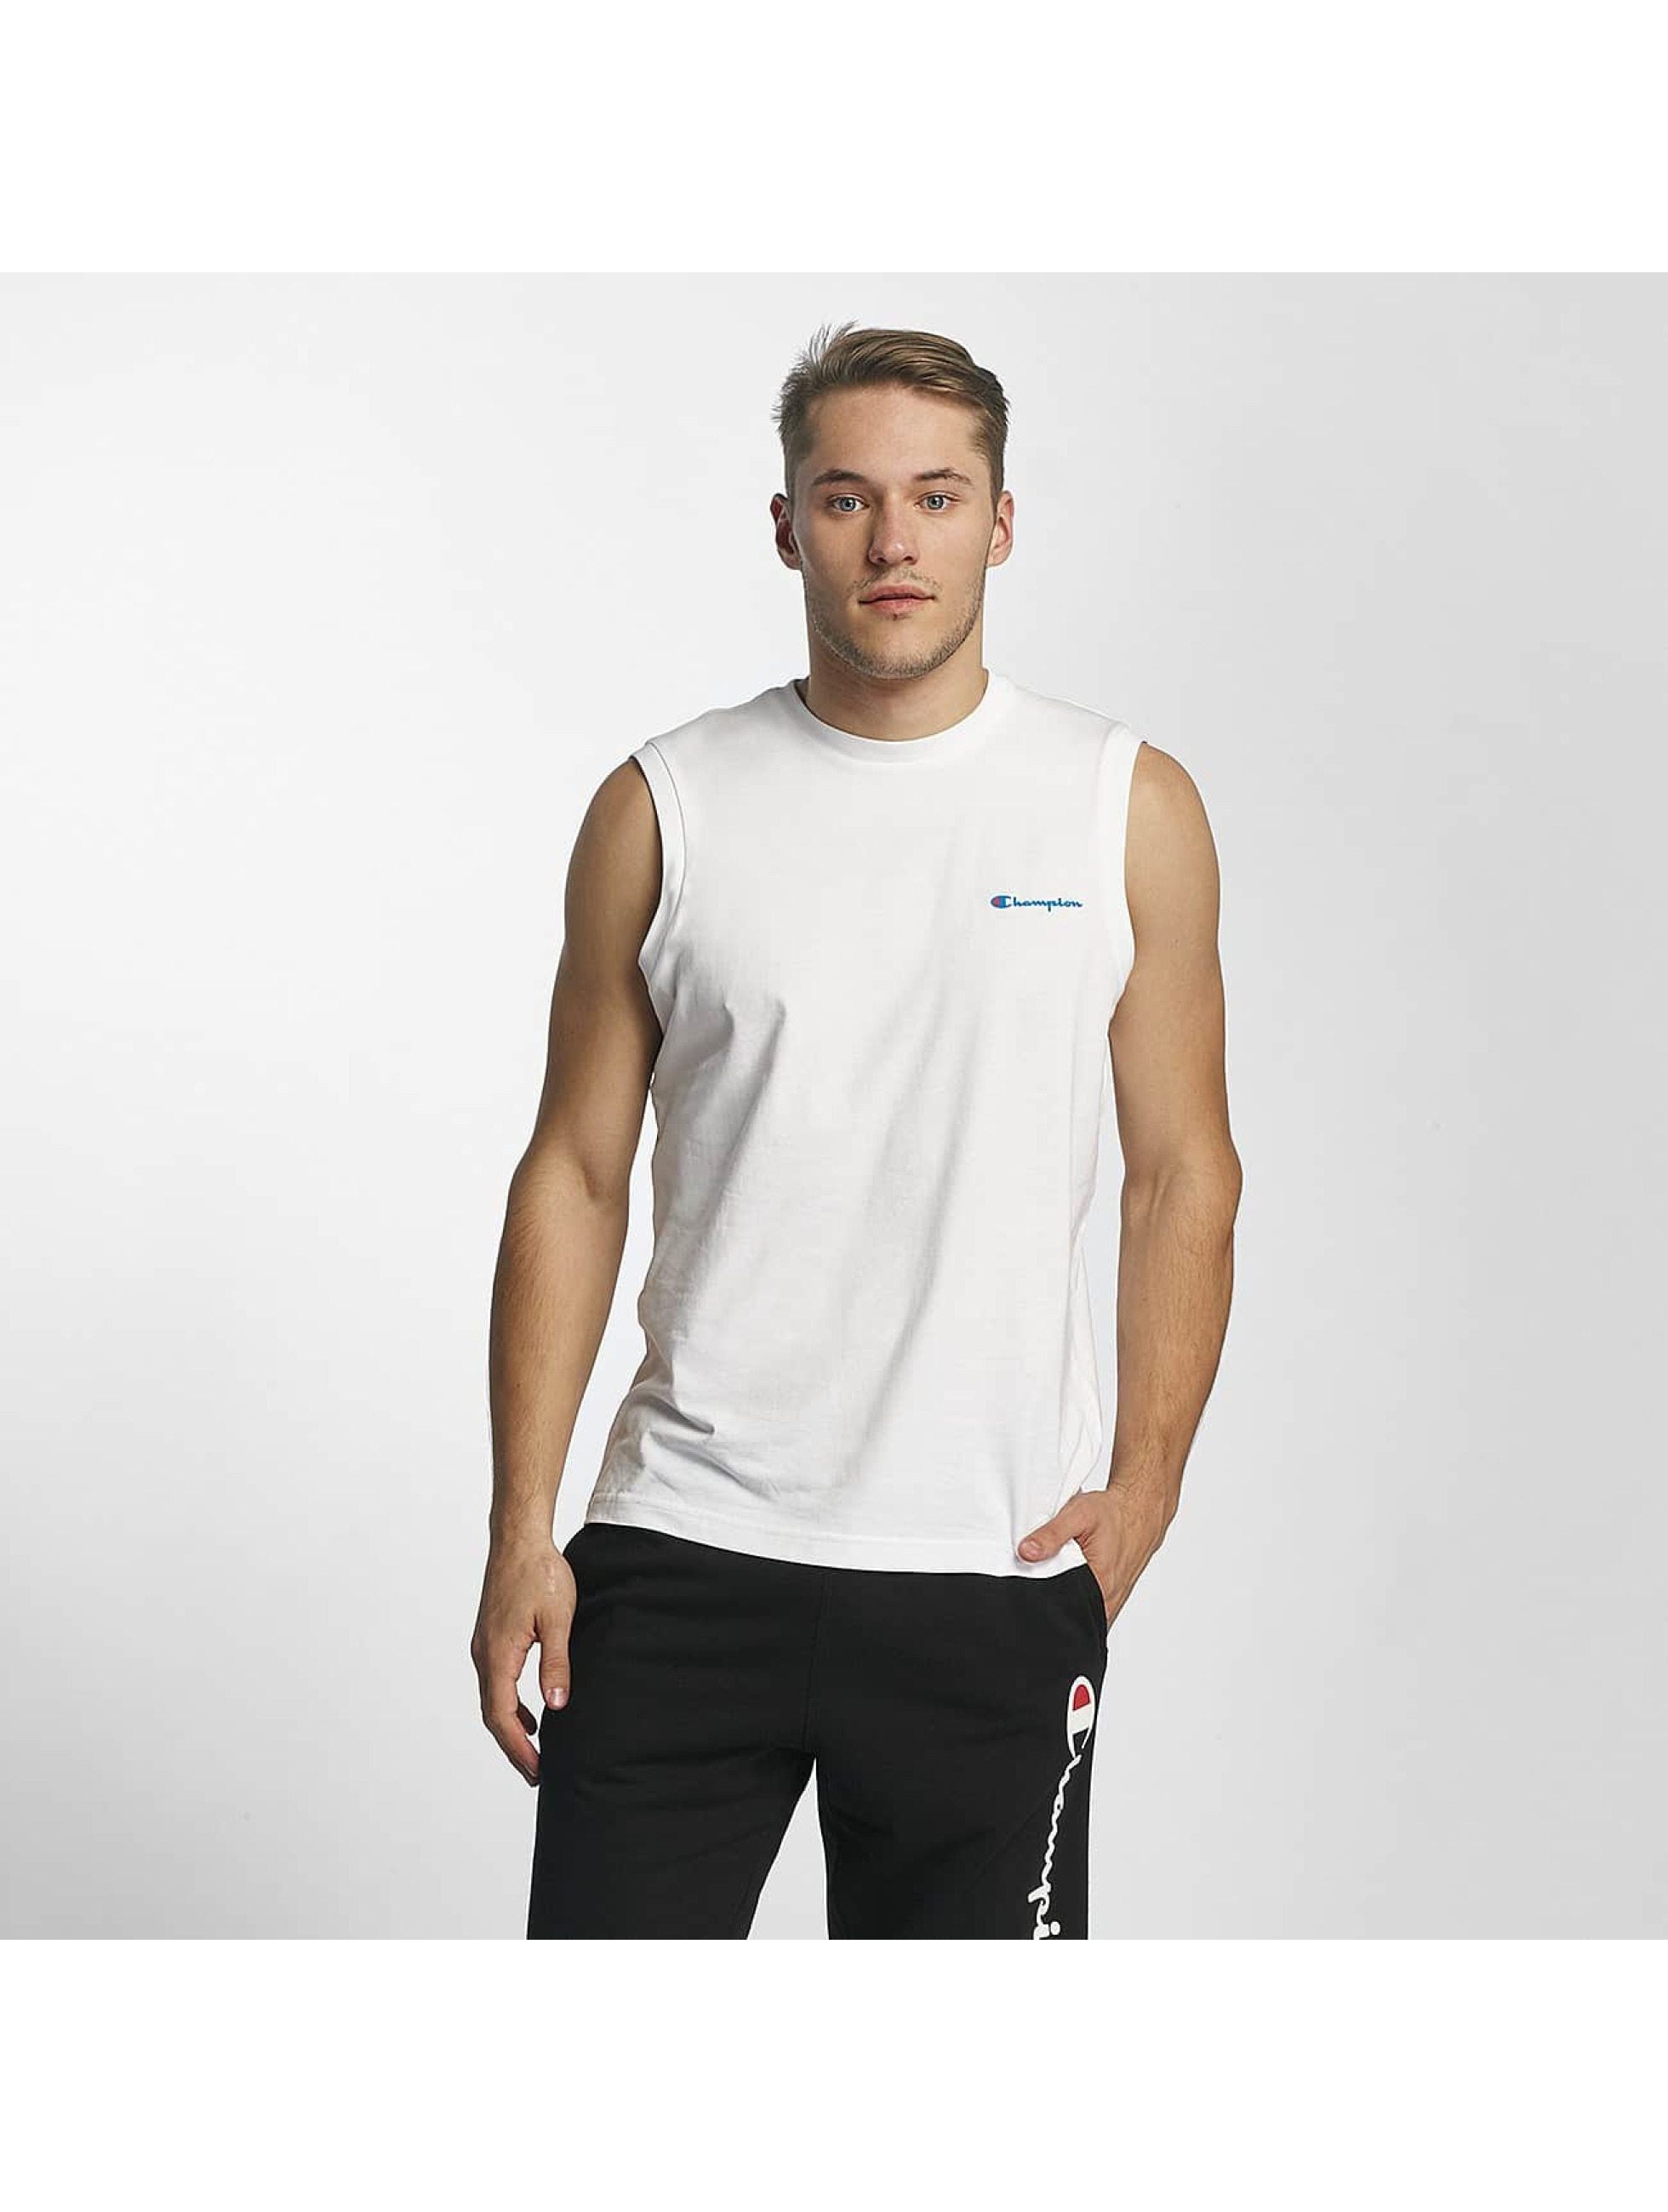 Champion Athletics Männer T-Shirt Sleeveless in weiß